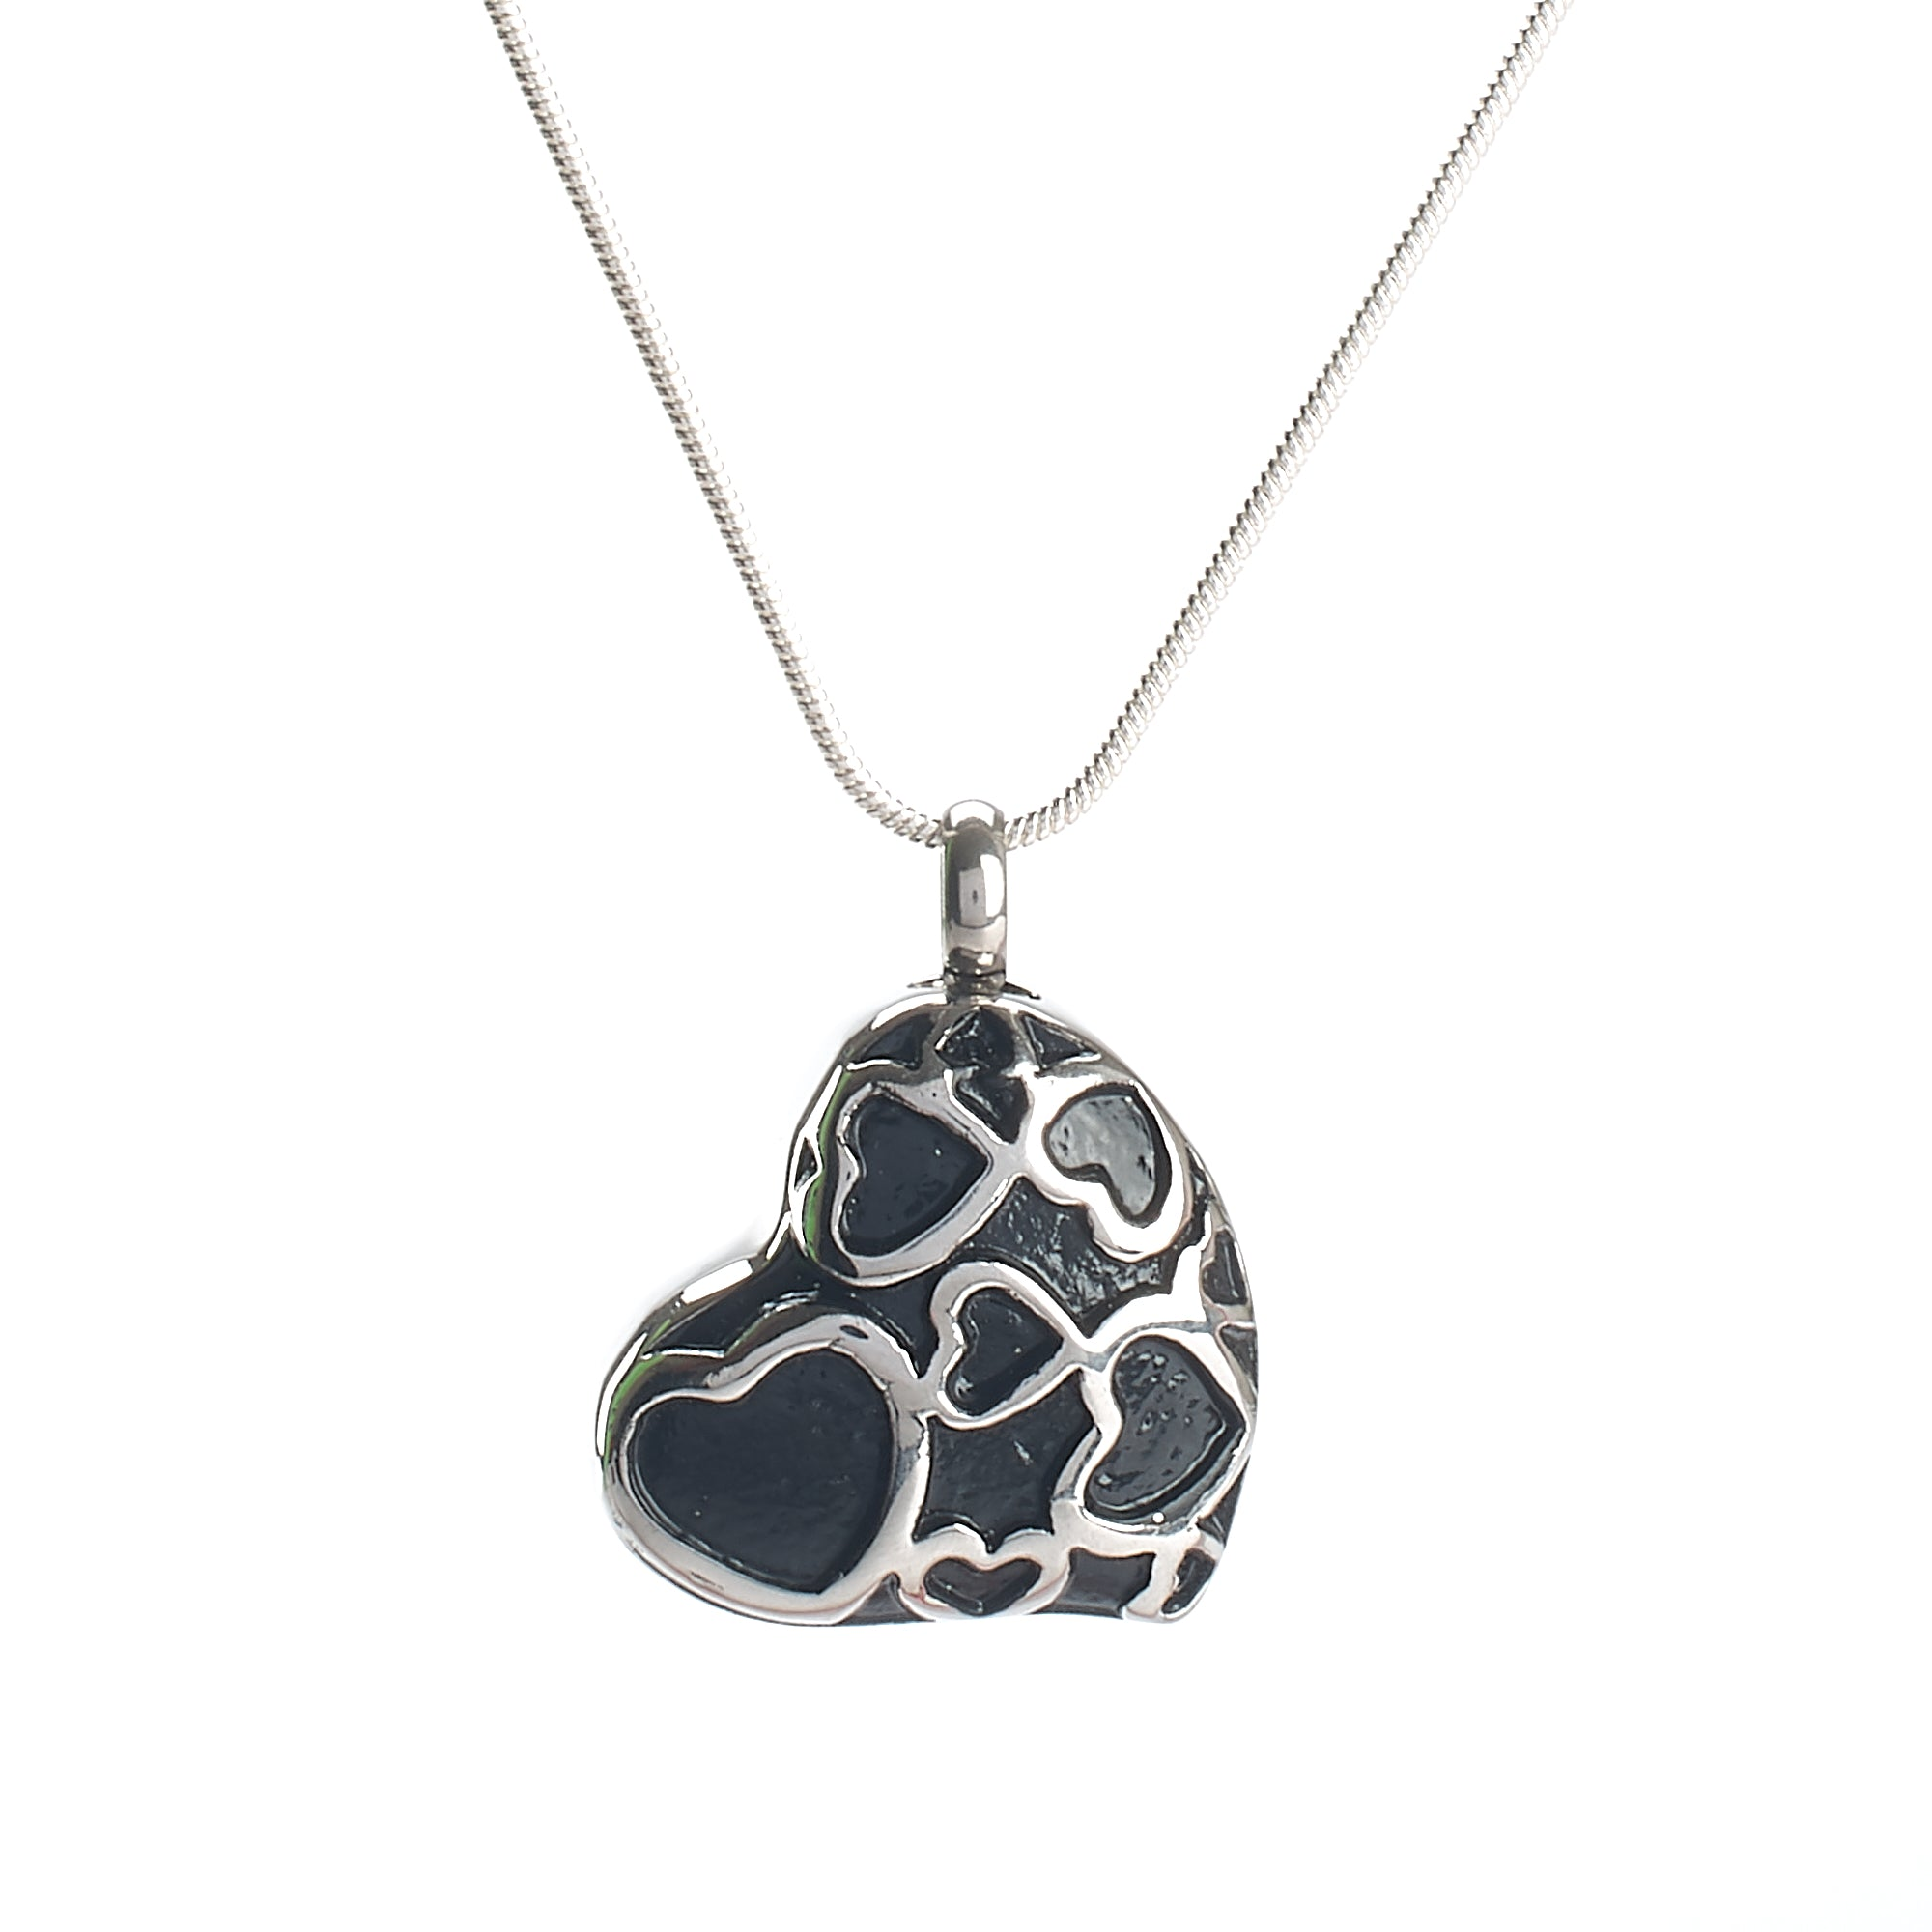 Cremation Pendant - Large Silver/Black Hearts within Heart